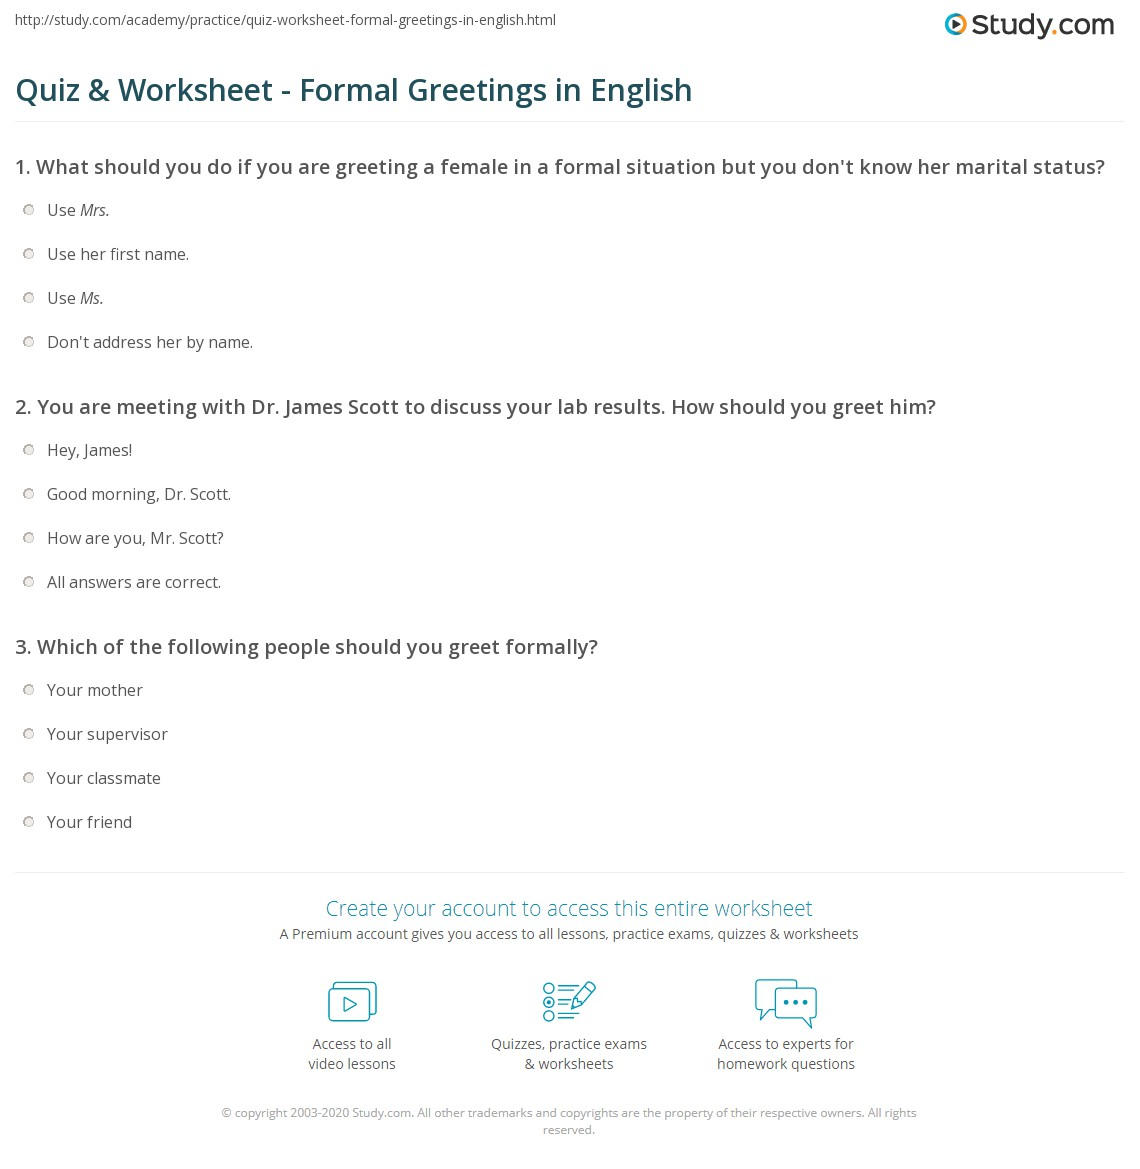 Quiz worksheet formal greetings in english study print formal greetings in english worksheet m4hsunfo